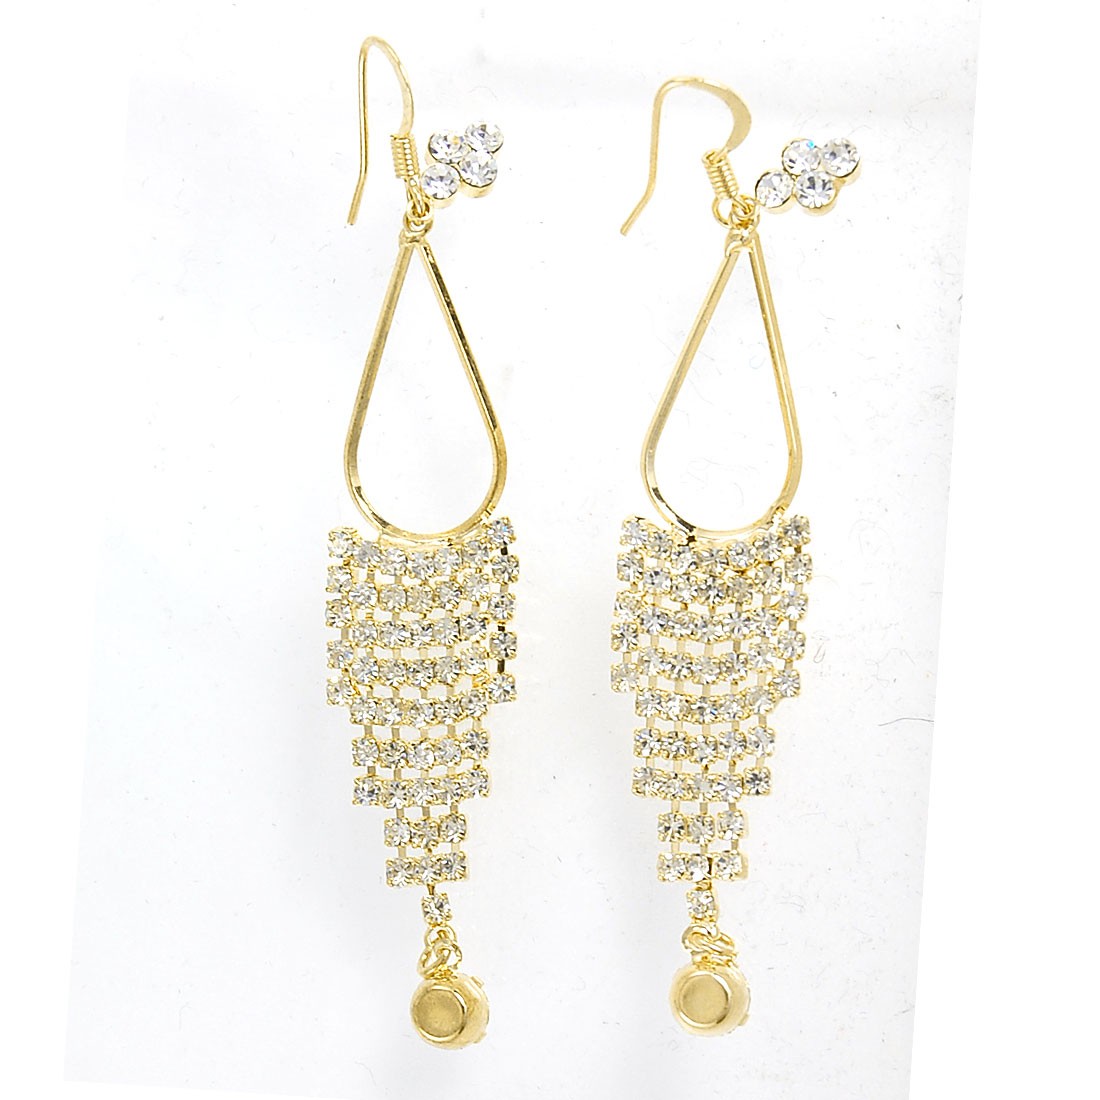 Pair Shiny Rhinestones Embellished Gold Tone Metal Long Chain Ear Hook Earrings